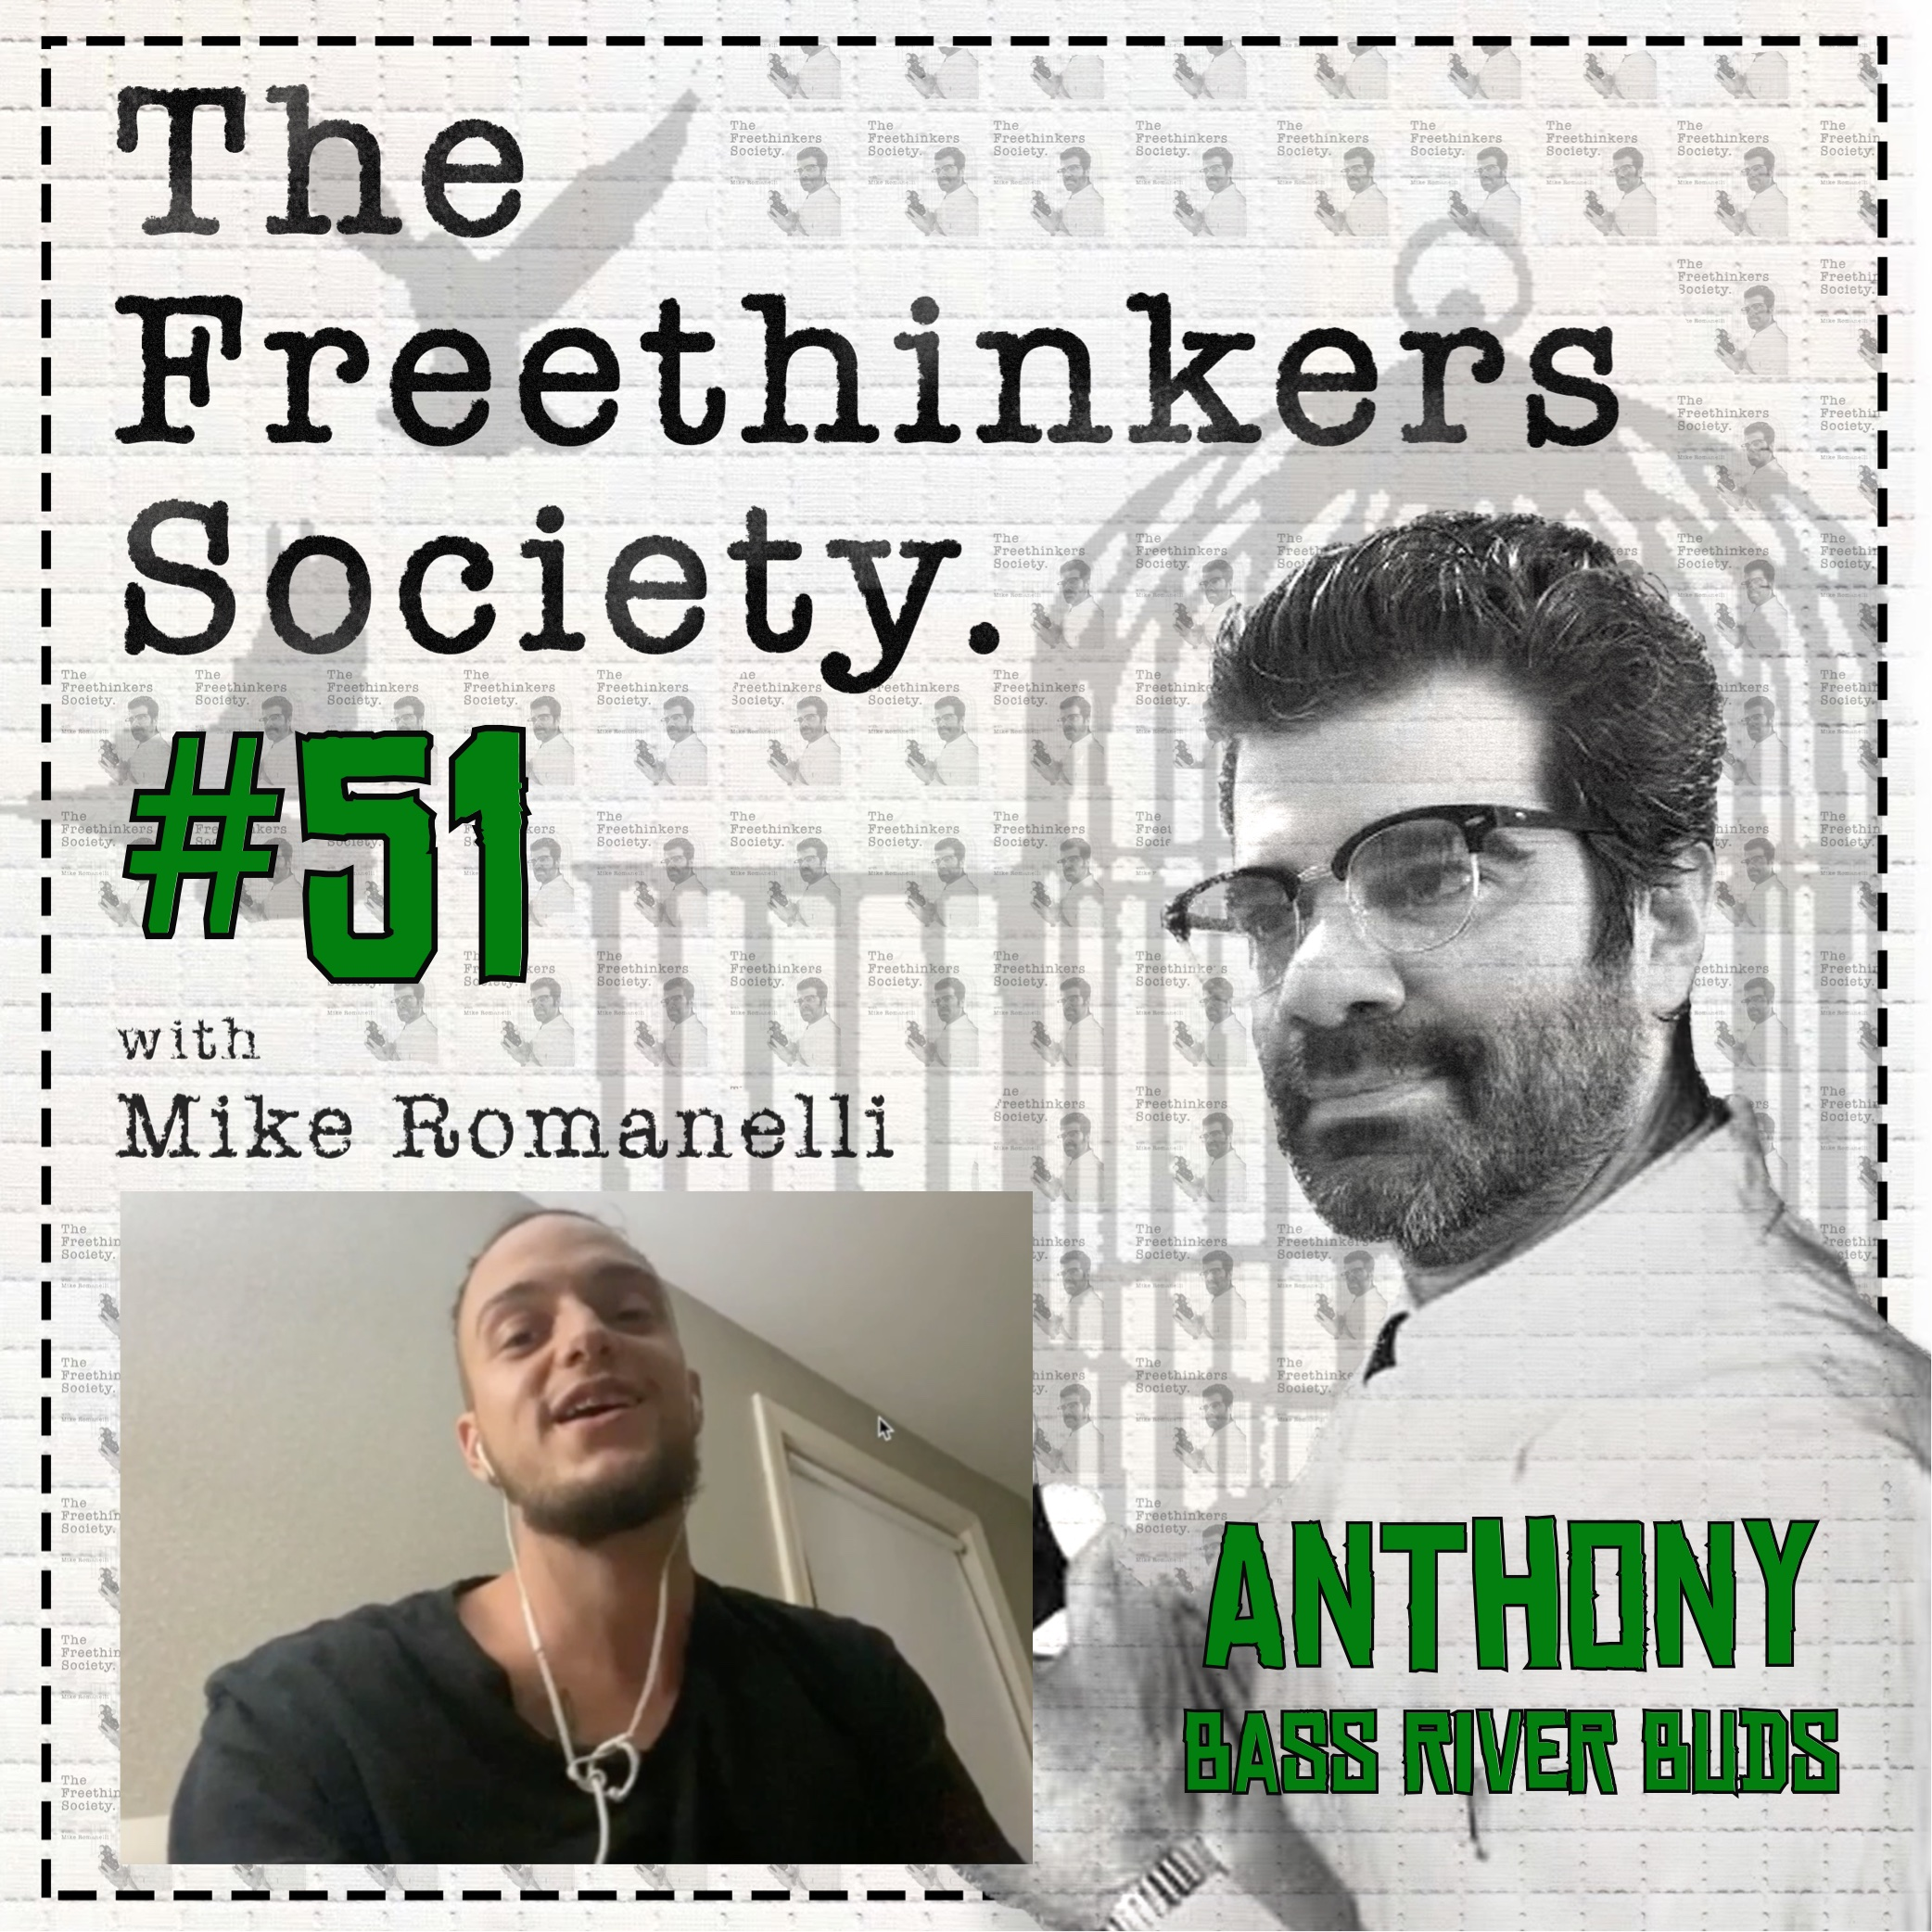 #51 Anthony Bass River Buds, The Freethinkers Society with Mike Romanelli